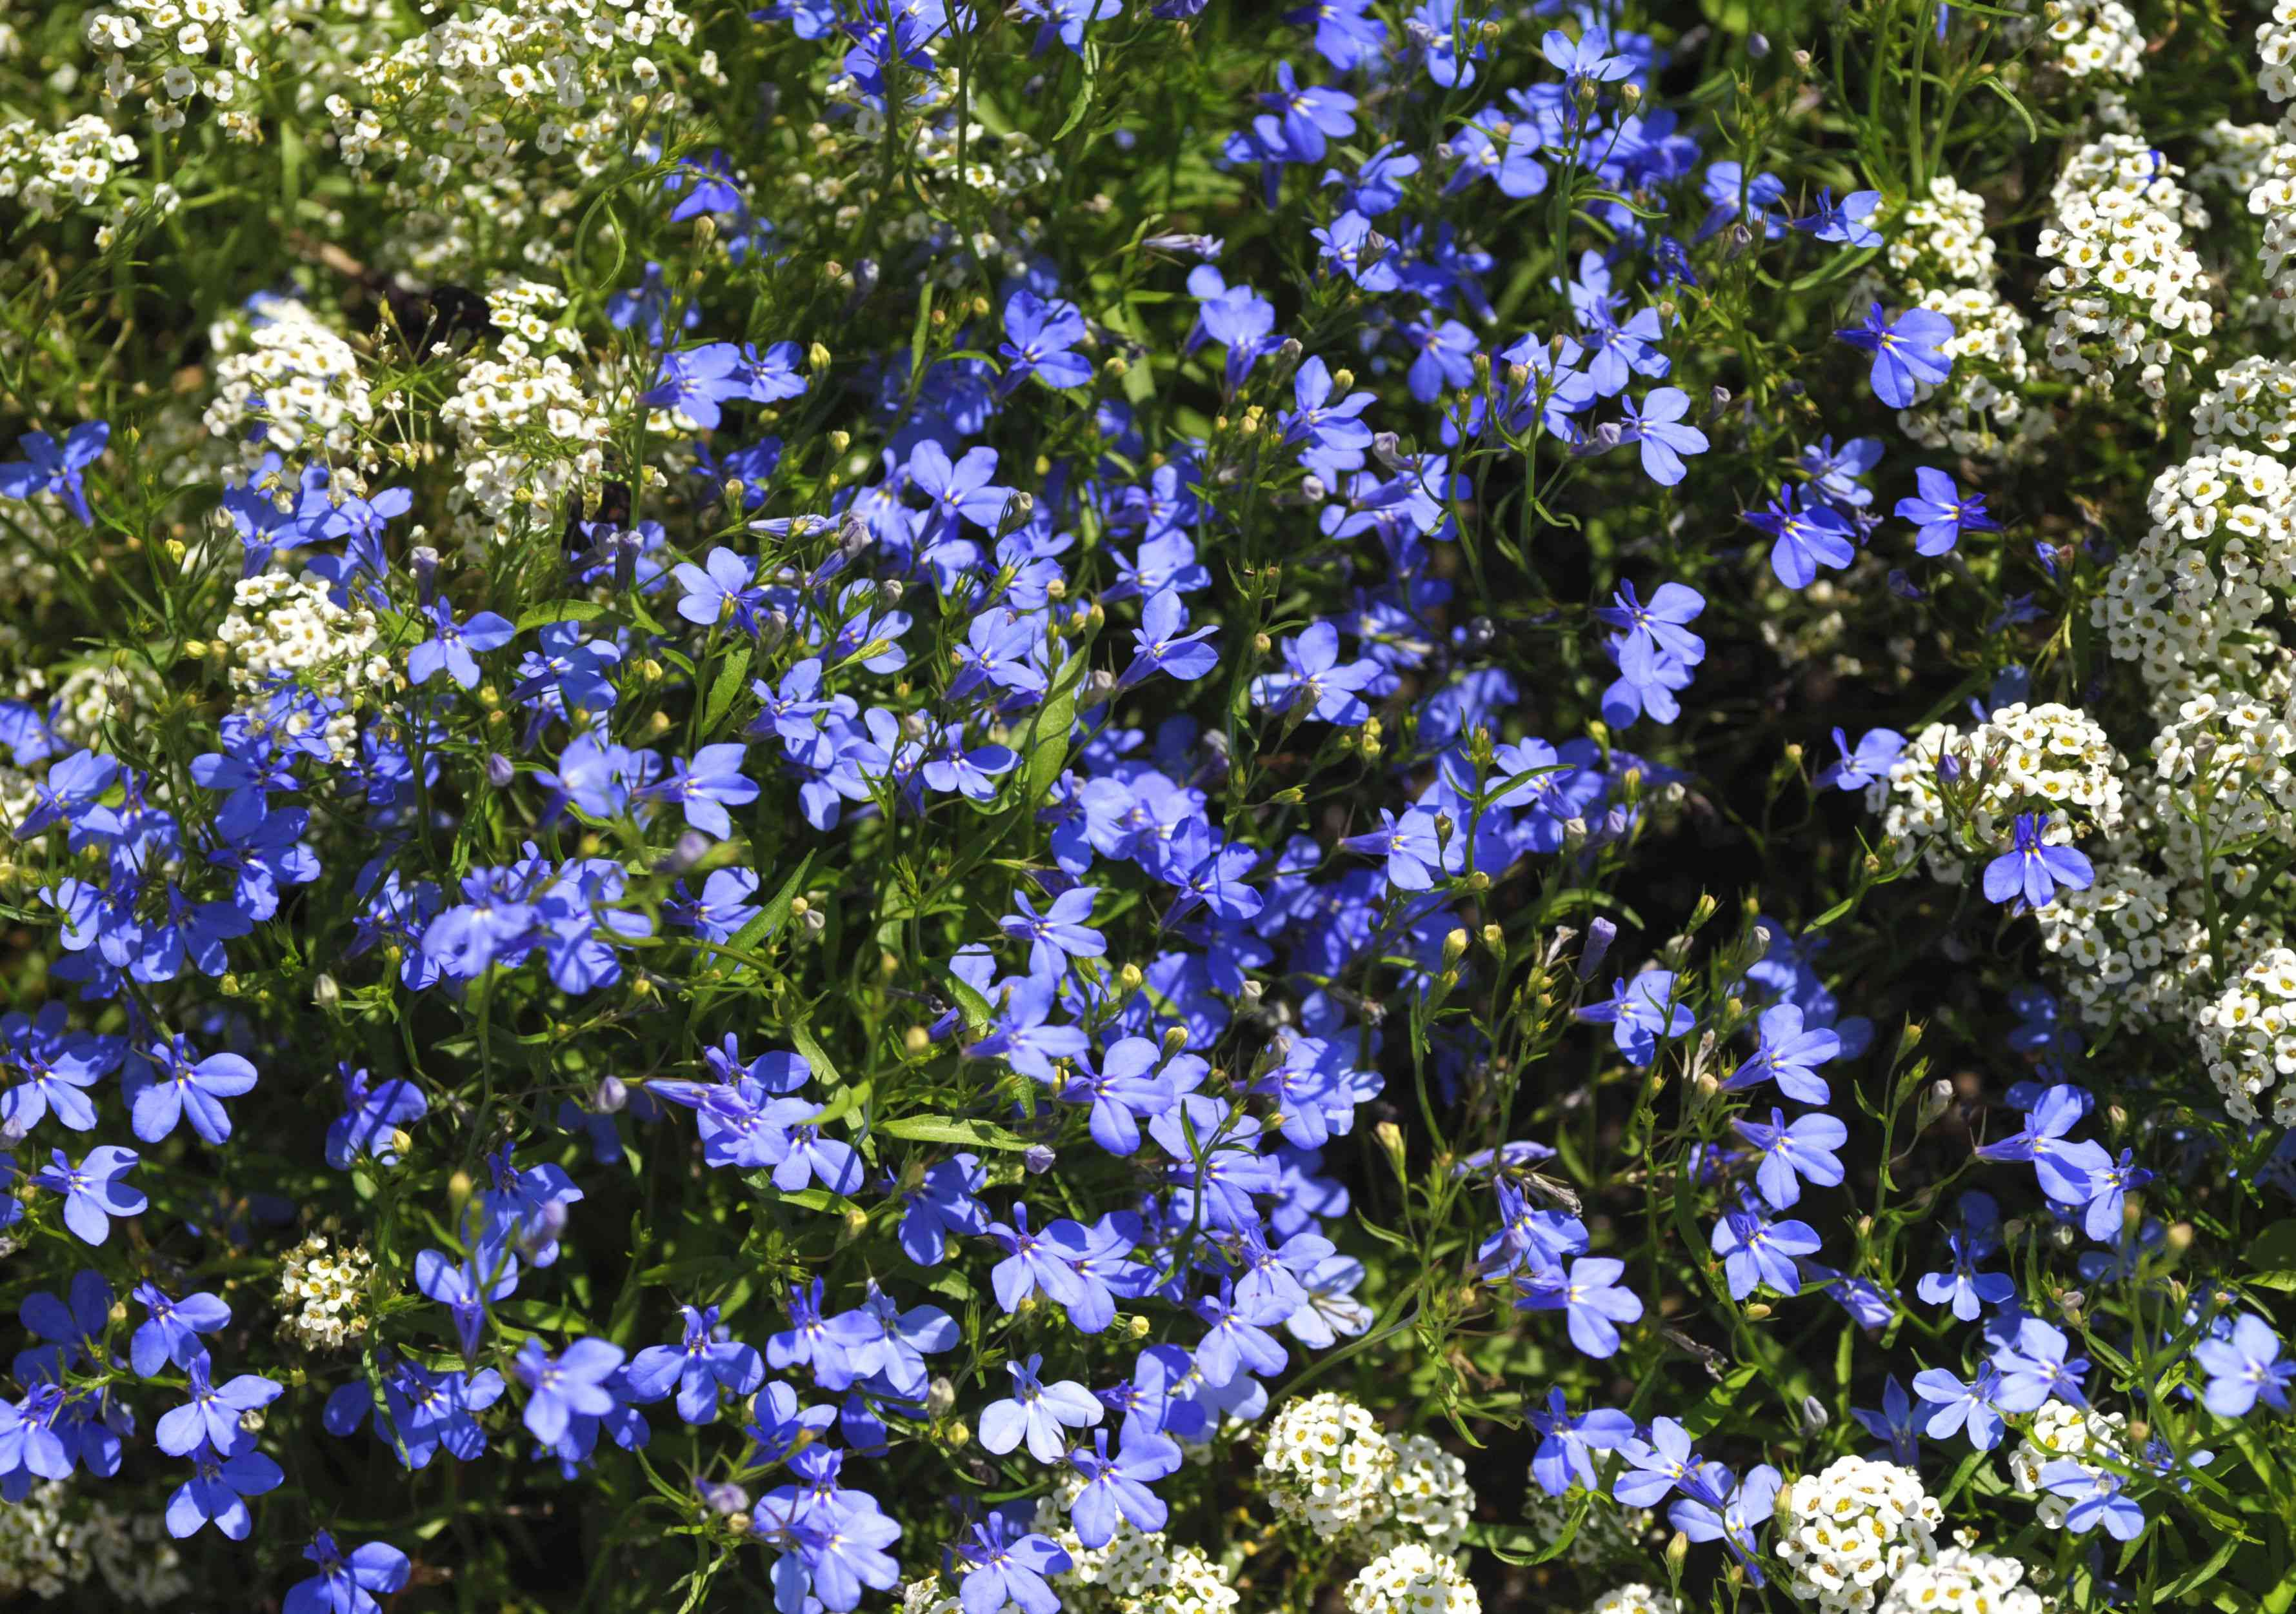 Trailing lobelia plant with small purple flowers in between leaves and small white flower clusters